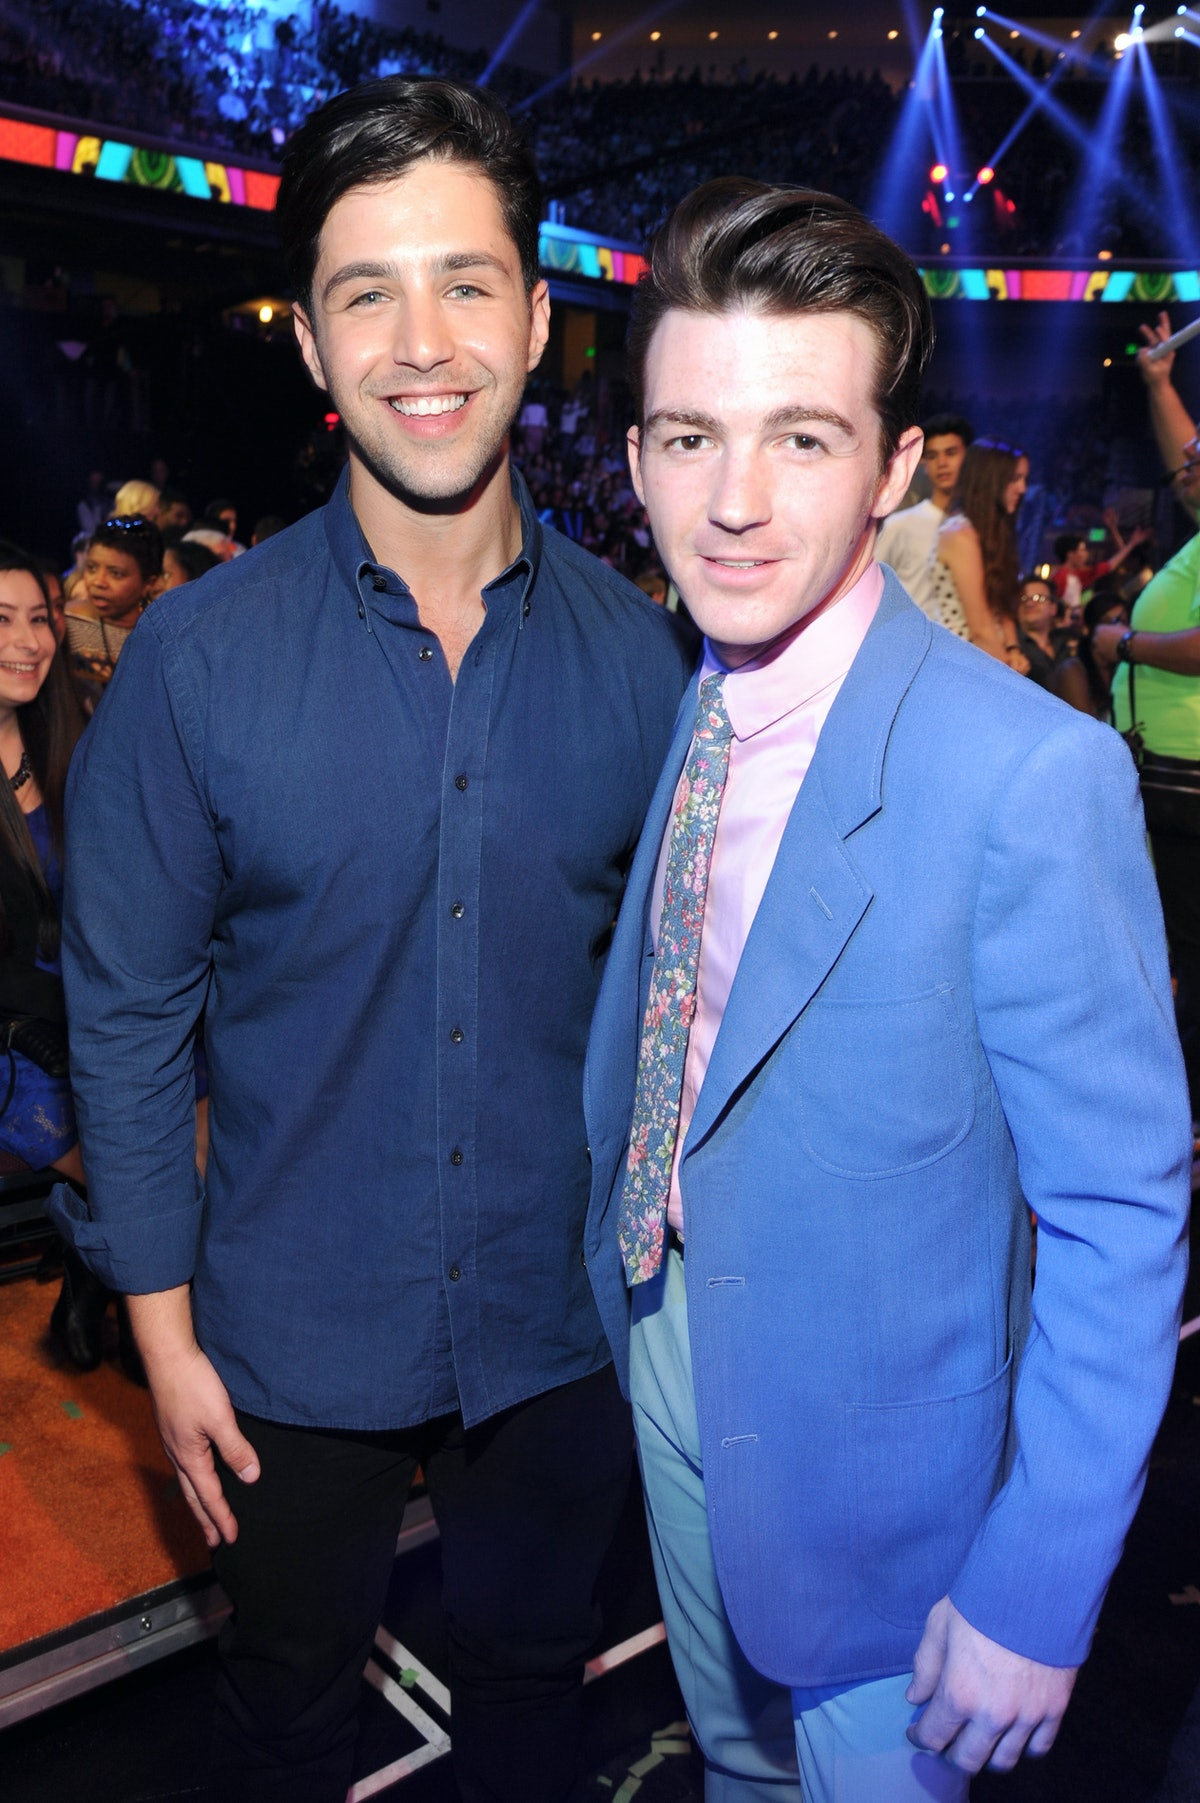 Actors Josh Peck and Drake Bell attend Nickelodeon's 27th Annual Kids' Choice Awards held at USC Galen Center on March 29, 2014 in Los Angeles, California.  (Photo by Kevin Mazur/KCA2014/WireImage)